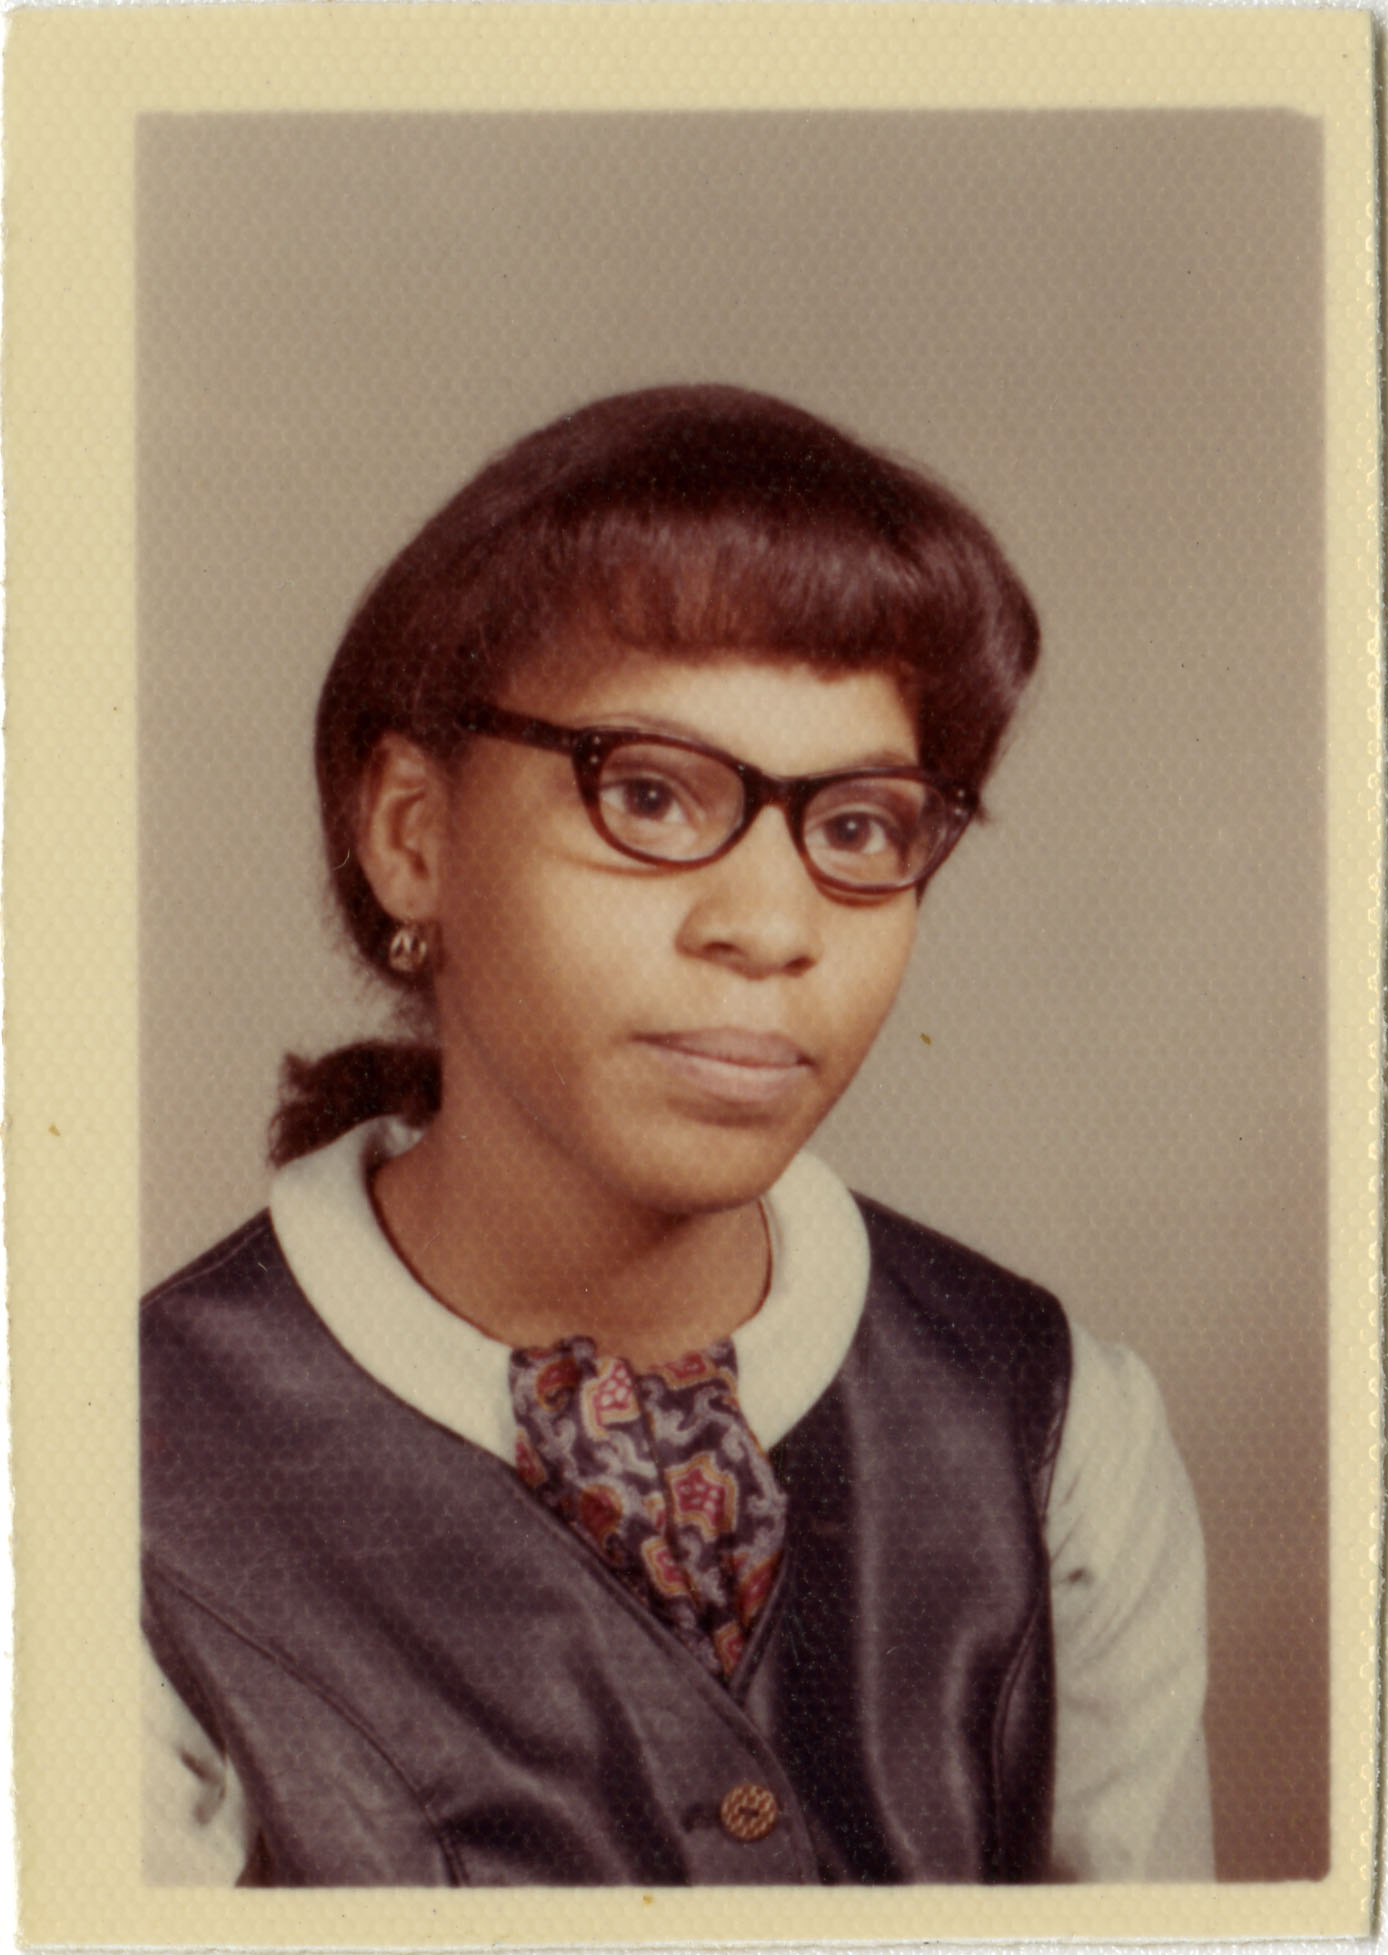 School photograph of Sharon Peters